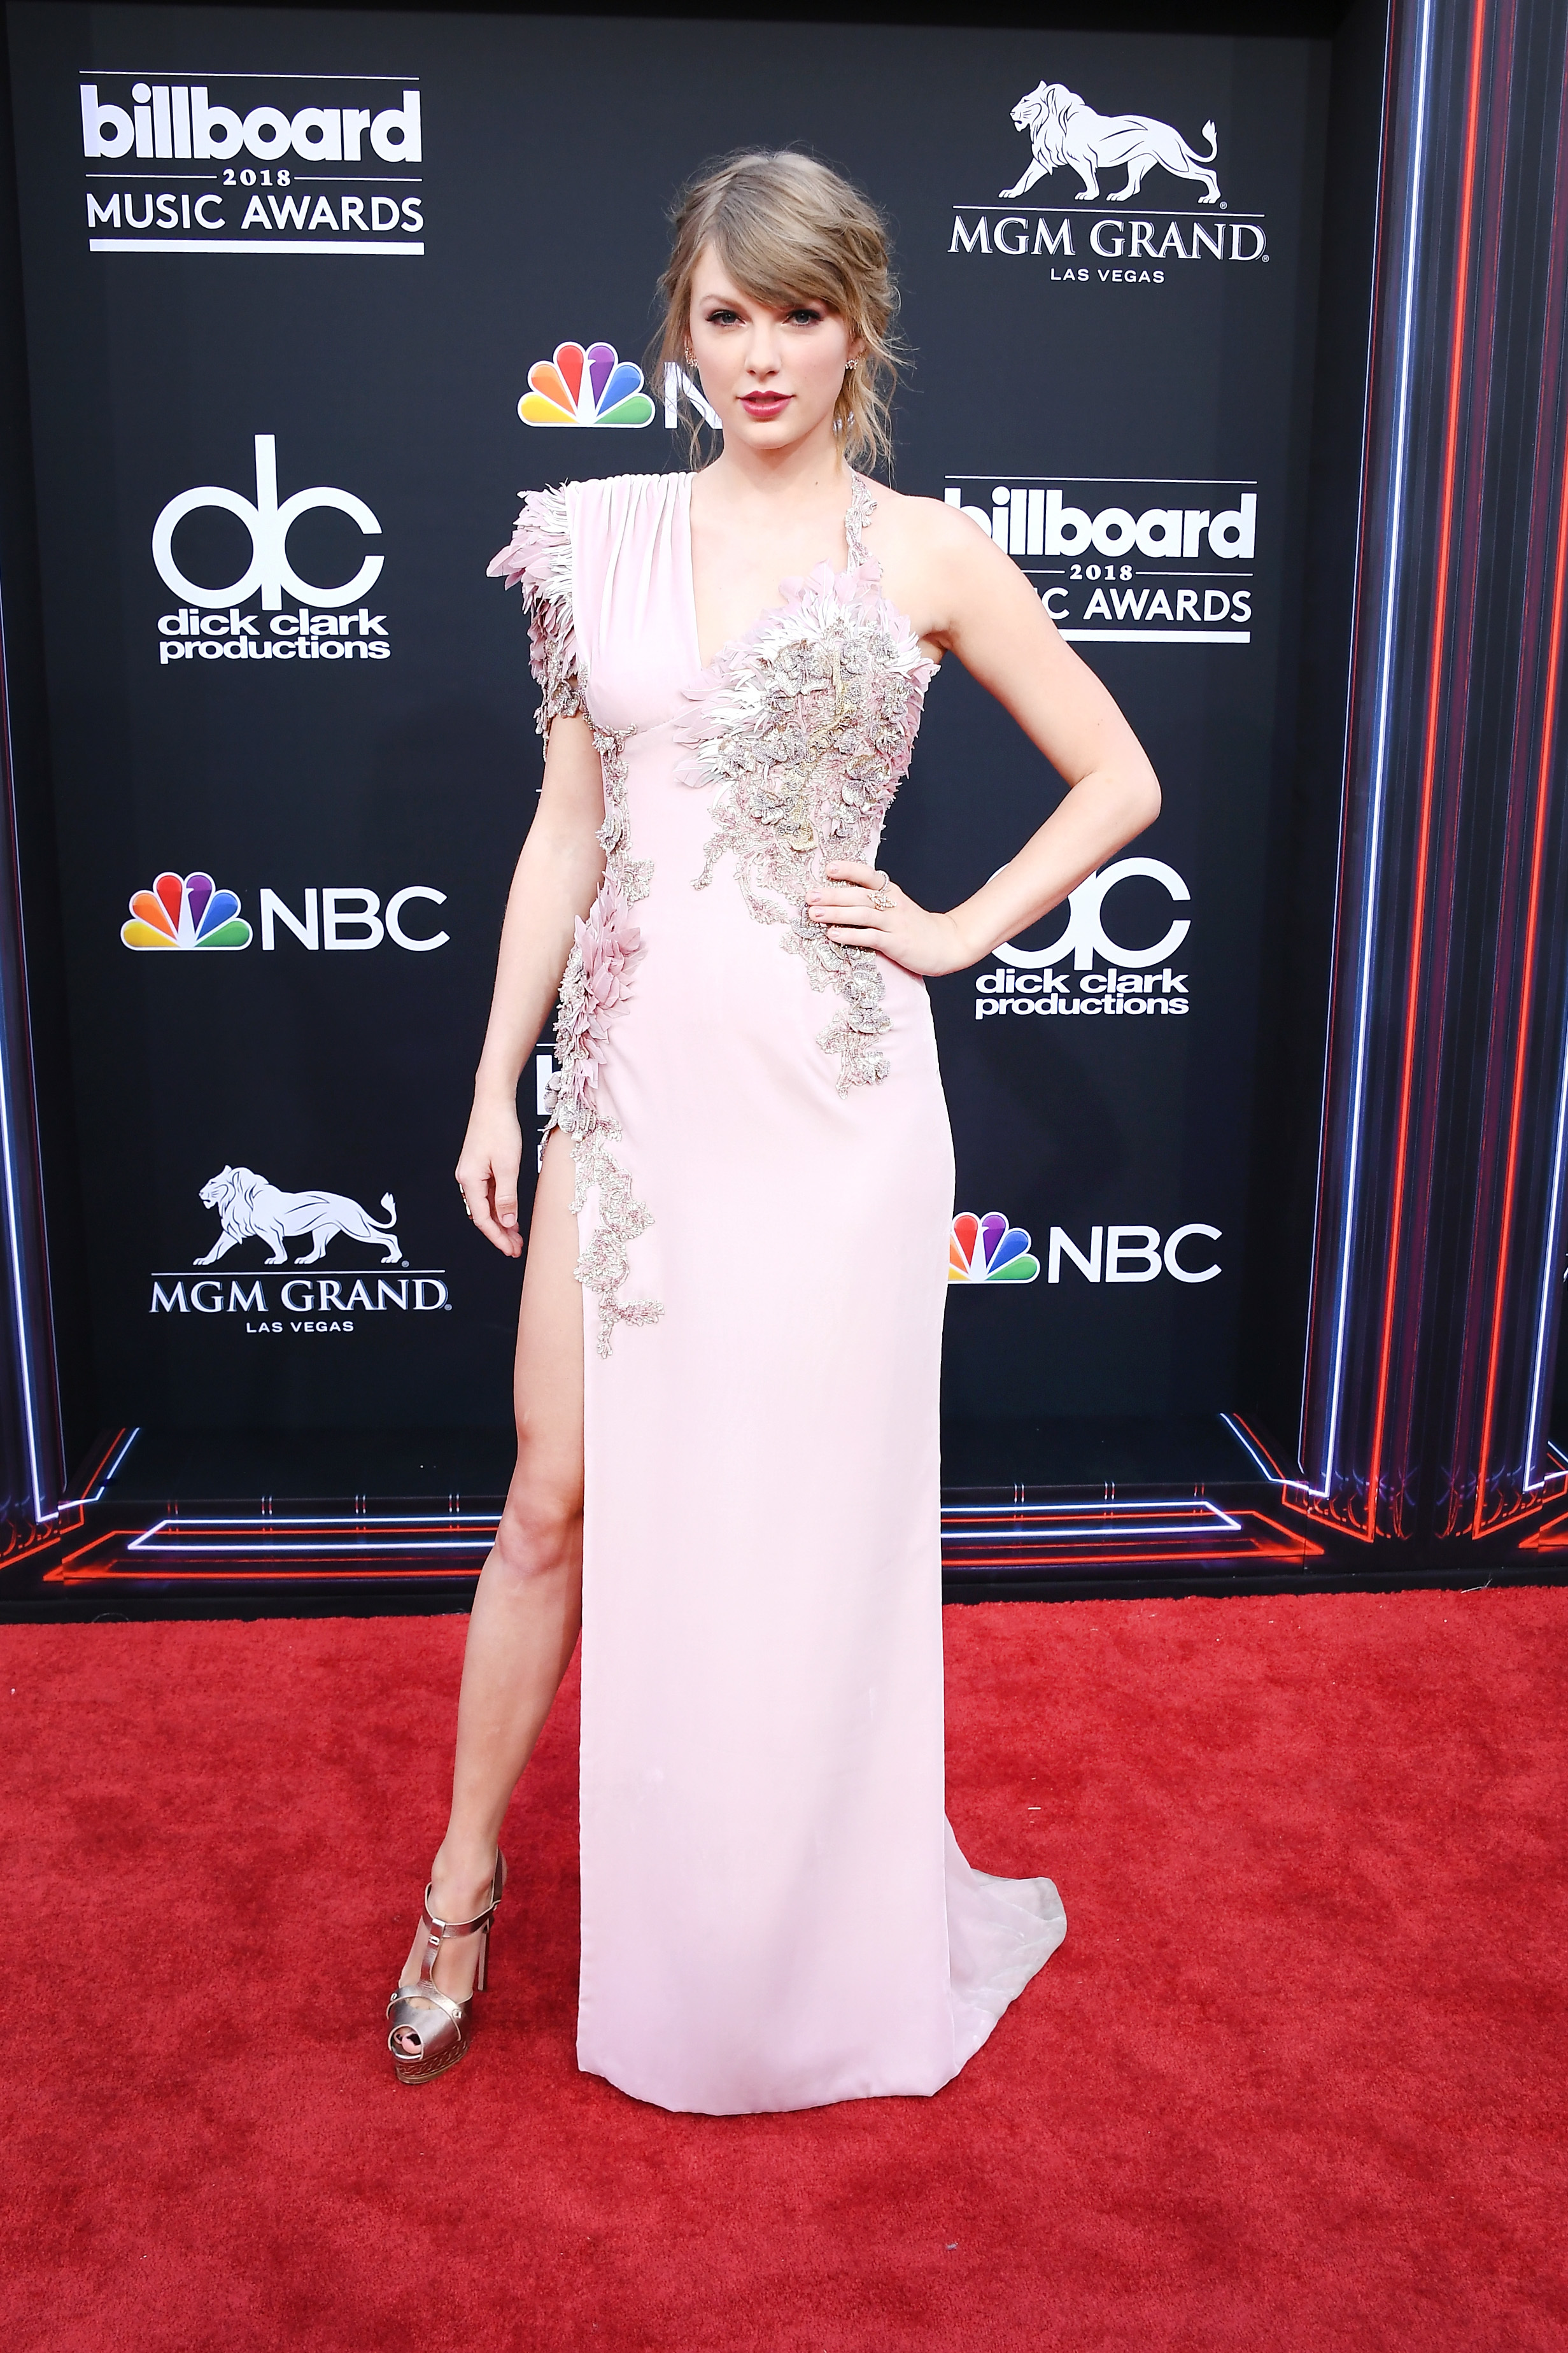 Taylor Swift arrives at the Billboard Music Awards at the MGM Grand Garden Arena in Las Vegas on May 20, 2018.